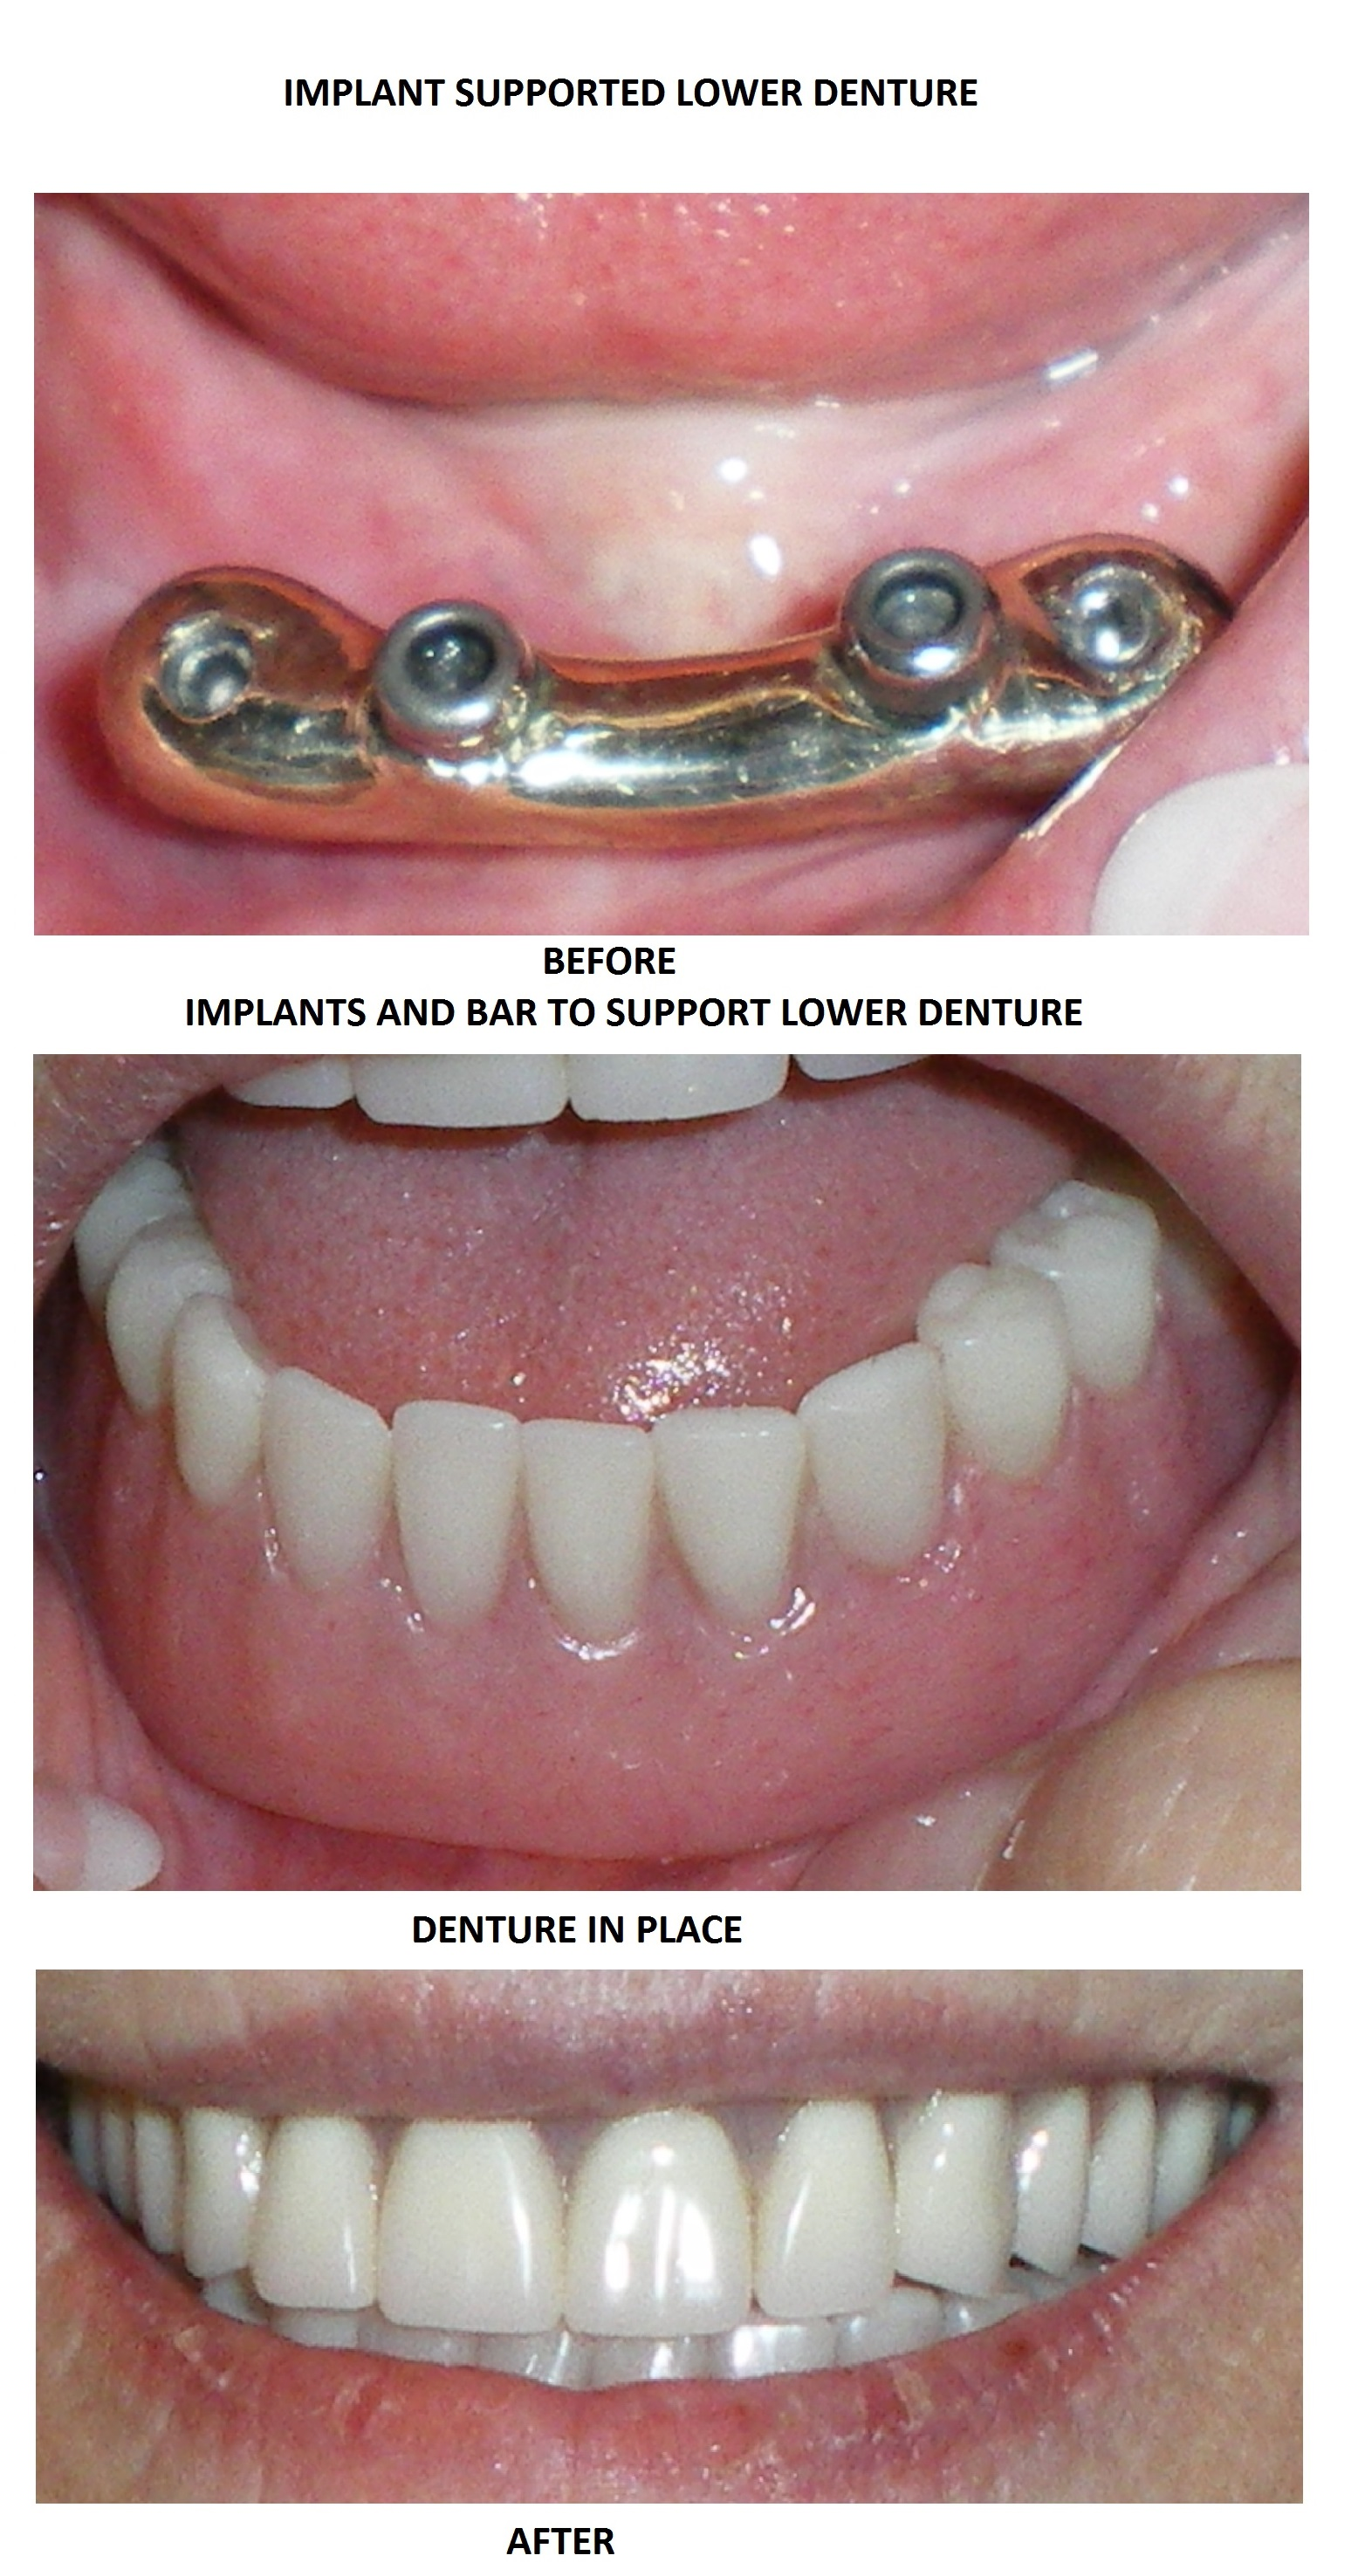 IMPLANT SUPPORTED LOWER DENTURE